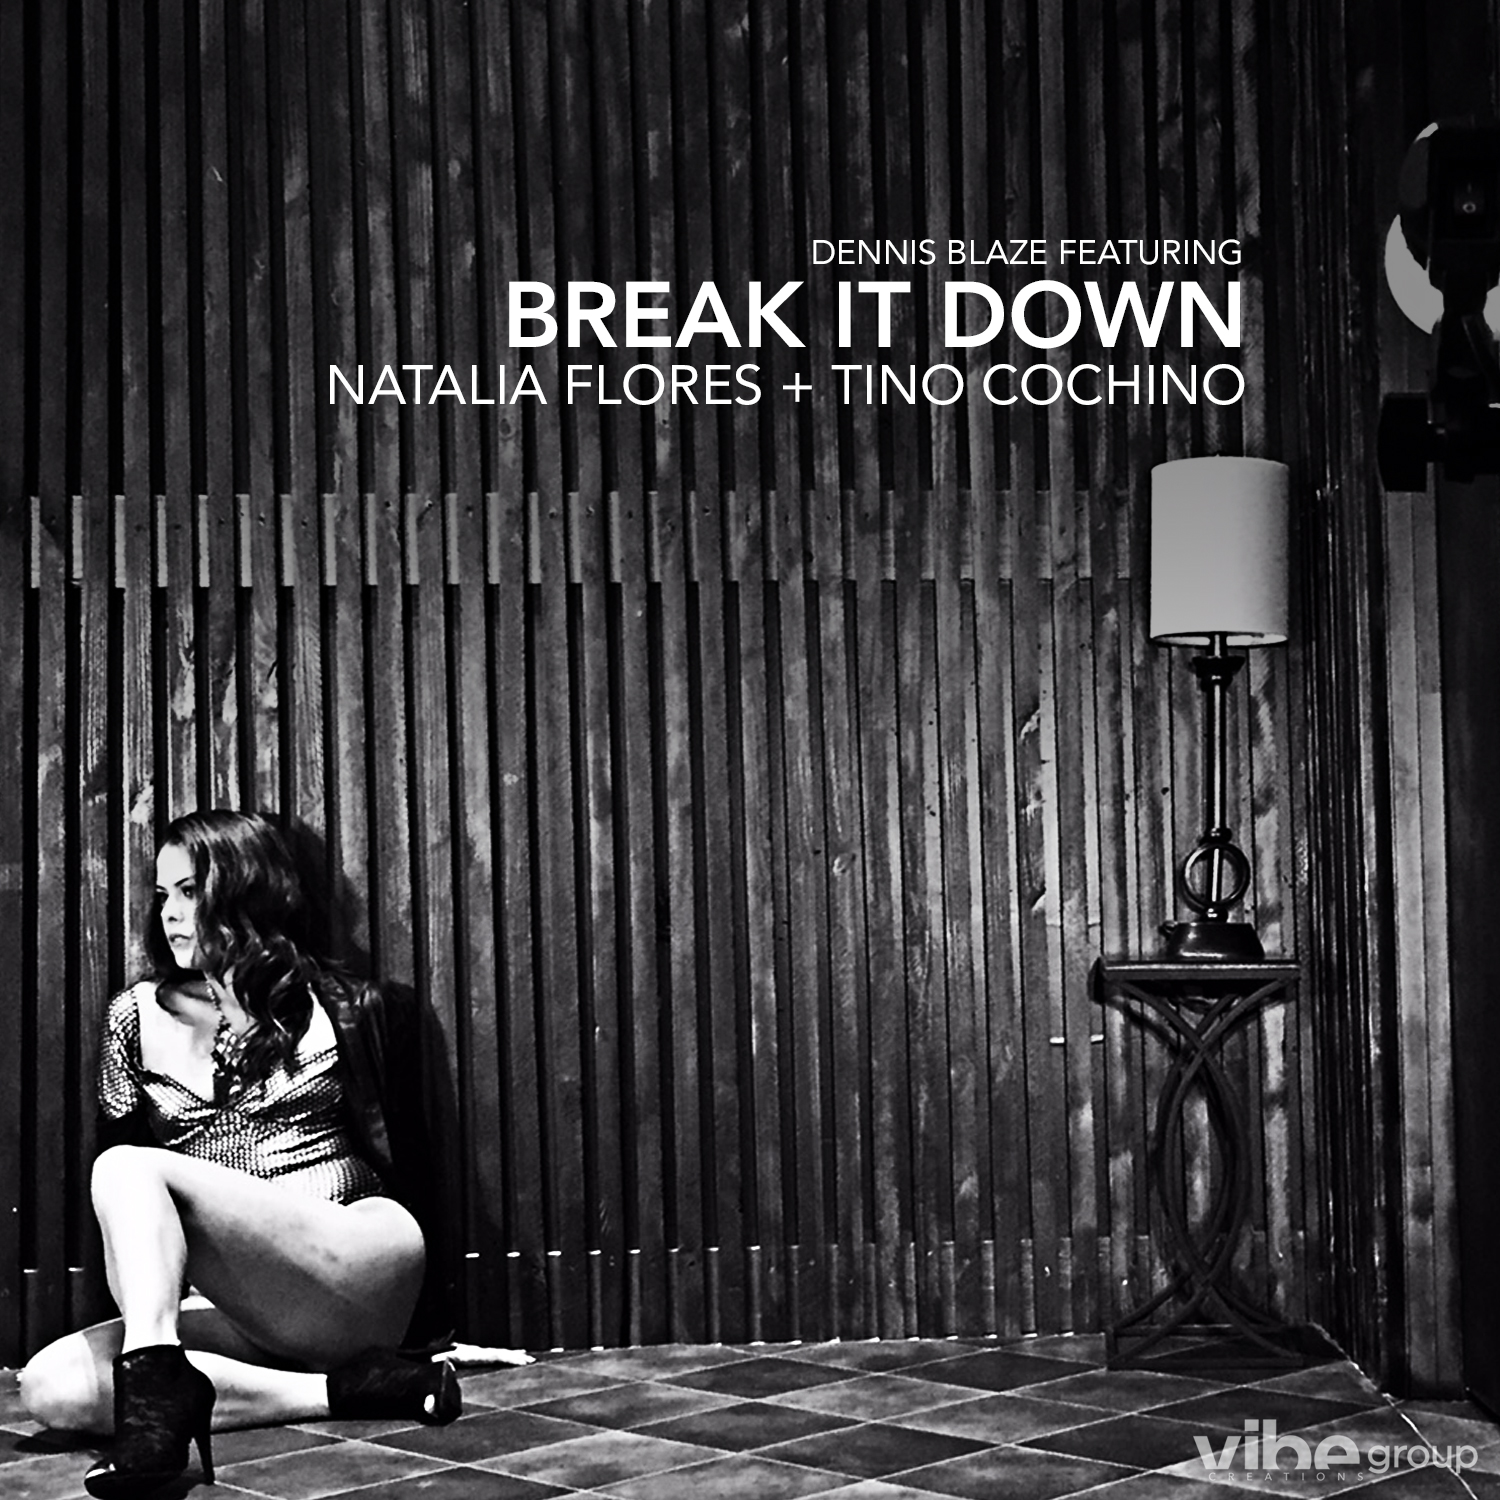 Dennis Blaze ft Natalia Flores x Tino Cochino – Break It Down